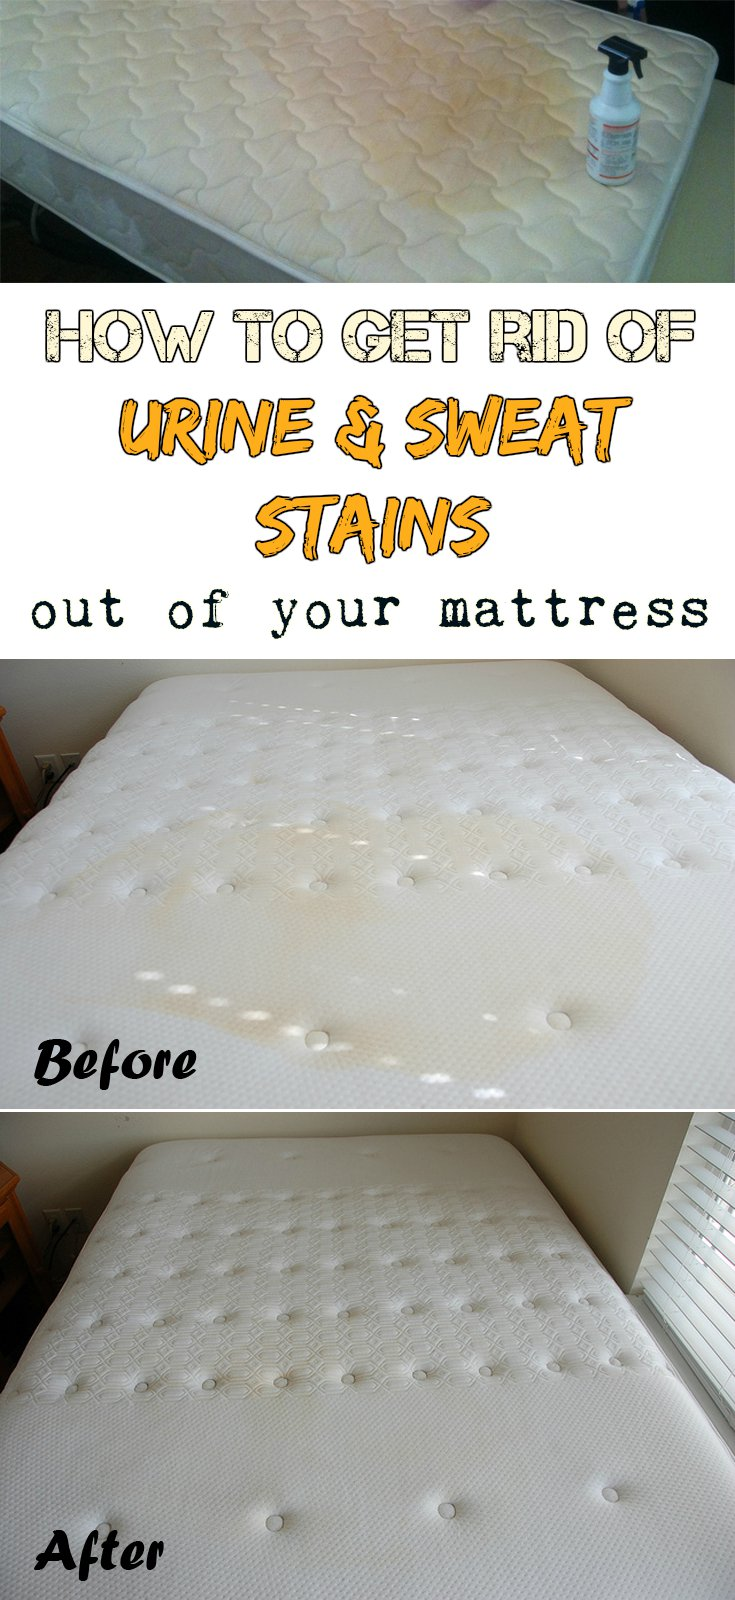 How to get rid of urine and sweat stains out of your